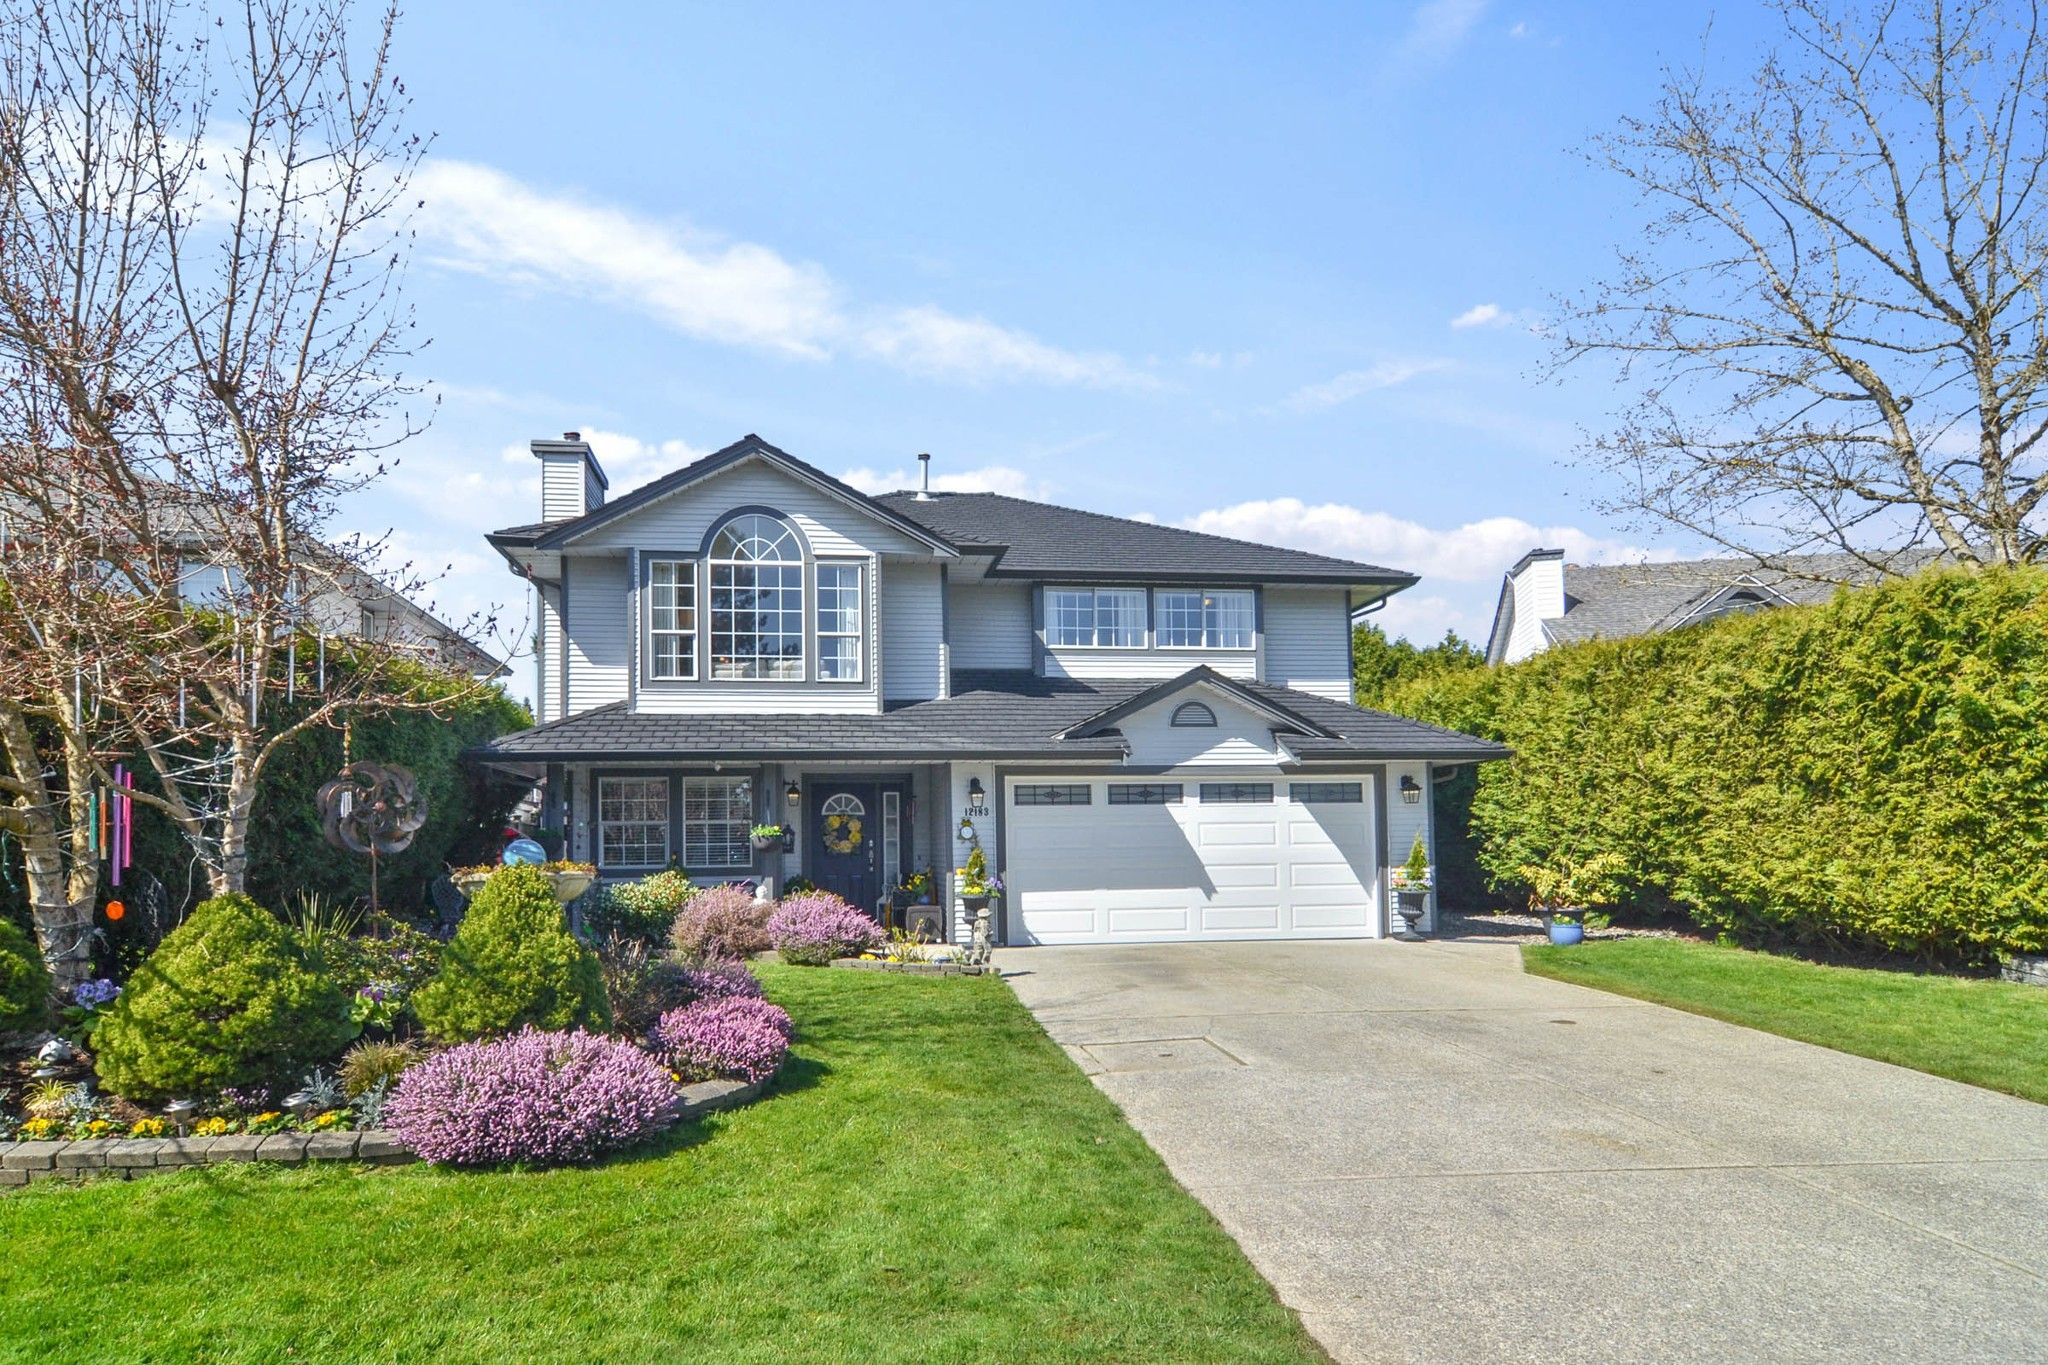 Main Photo: 12183 CHERRYWOOD Drive in Maple Ridge: East Central House for sale : MLS®# R2569705